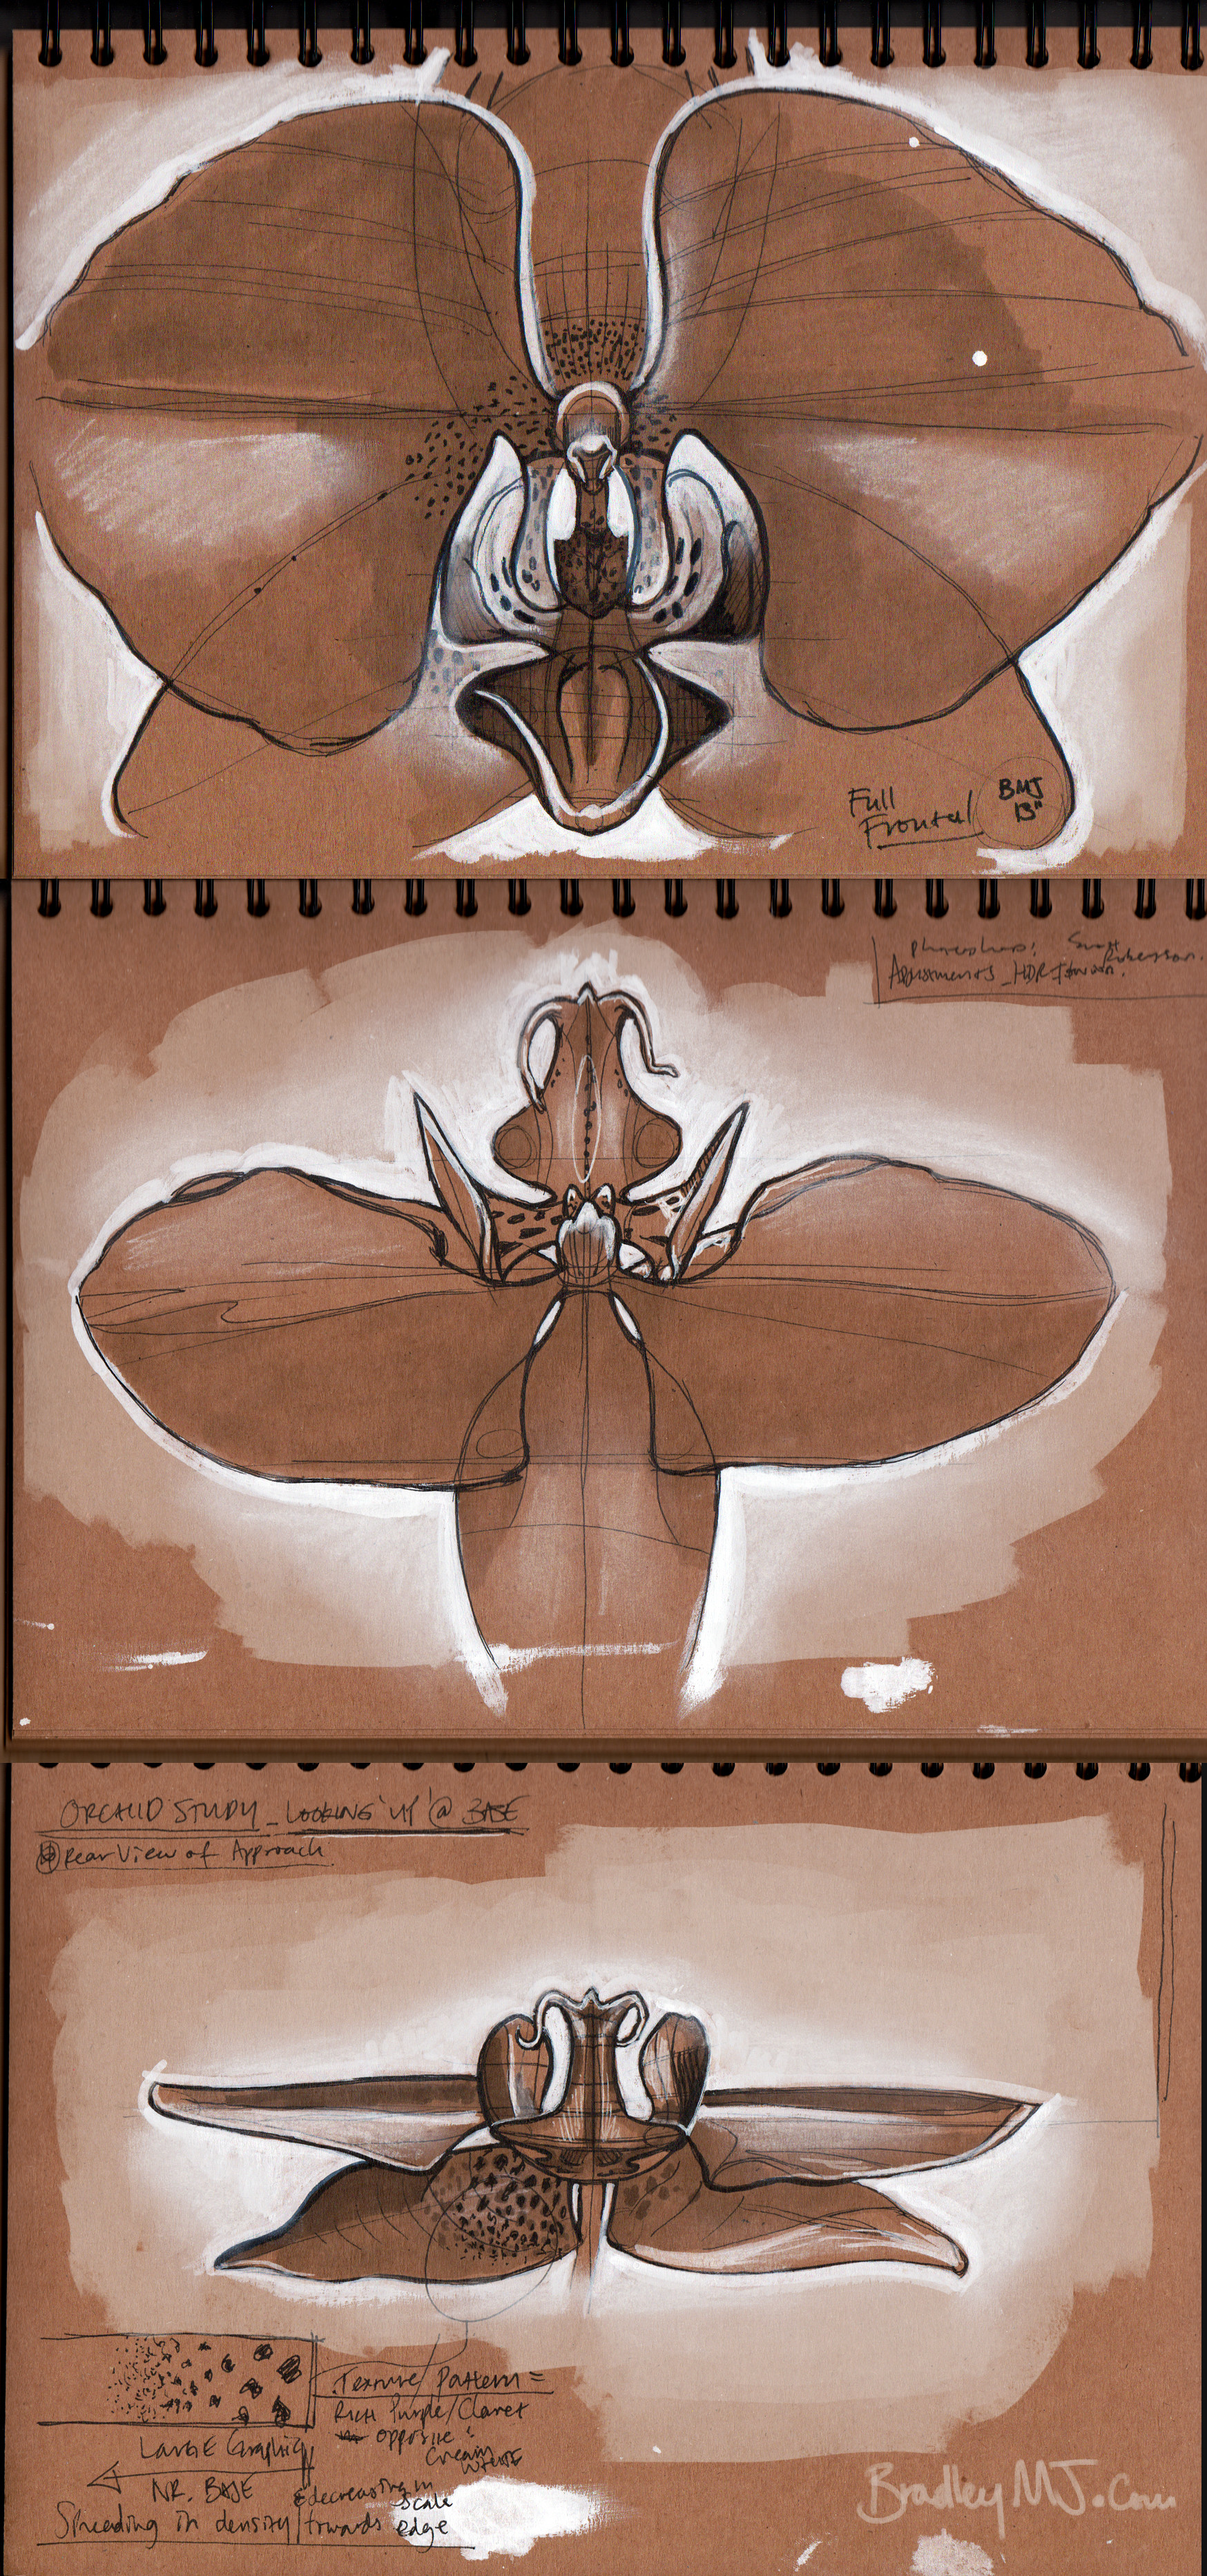 Orchid shape studies